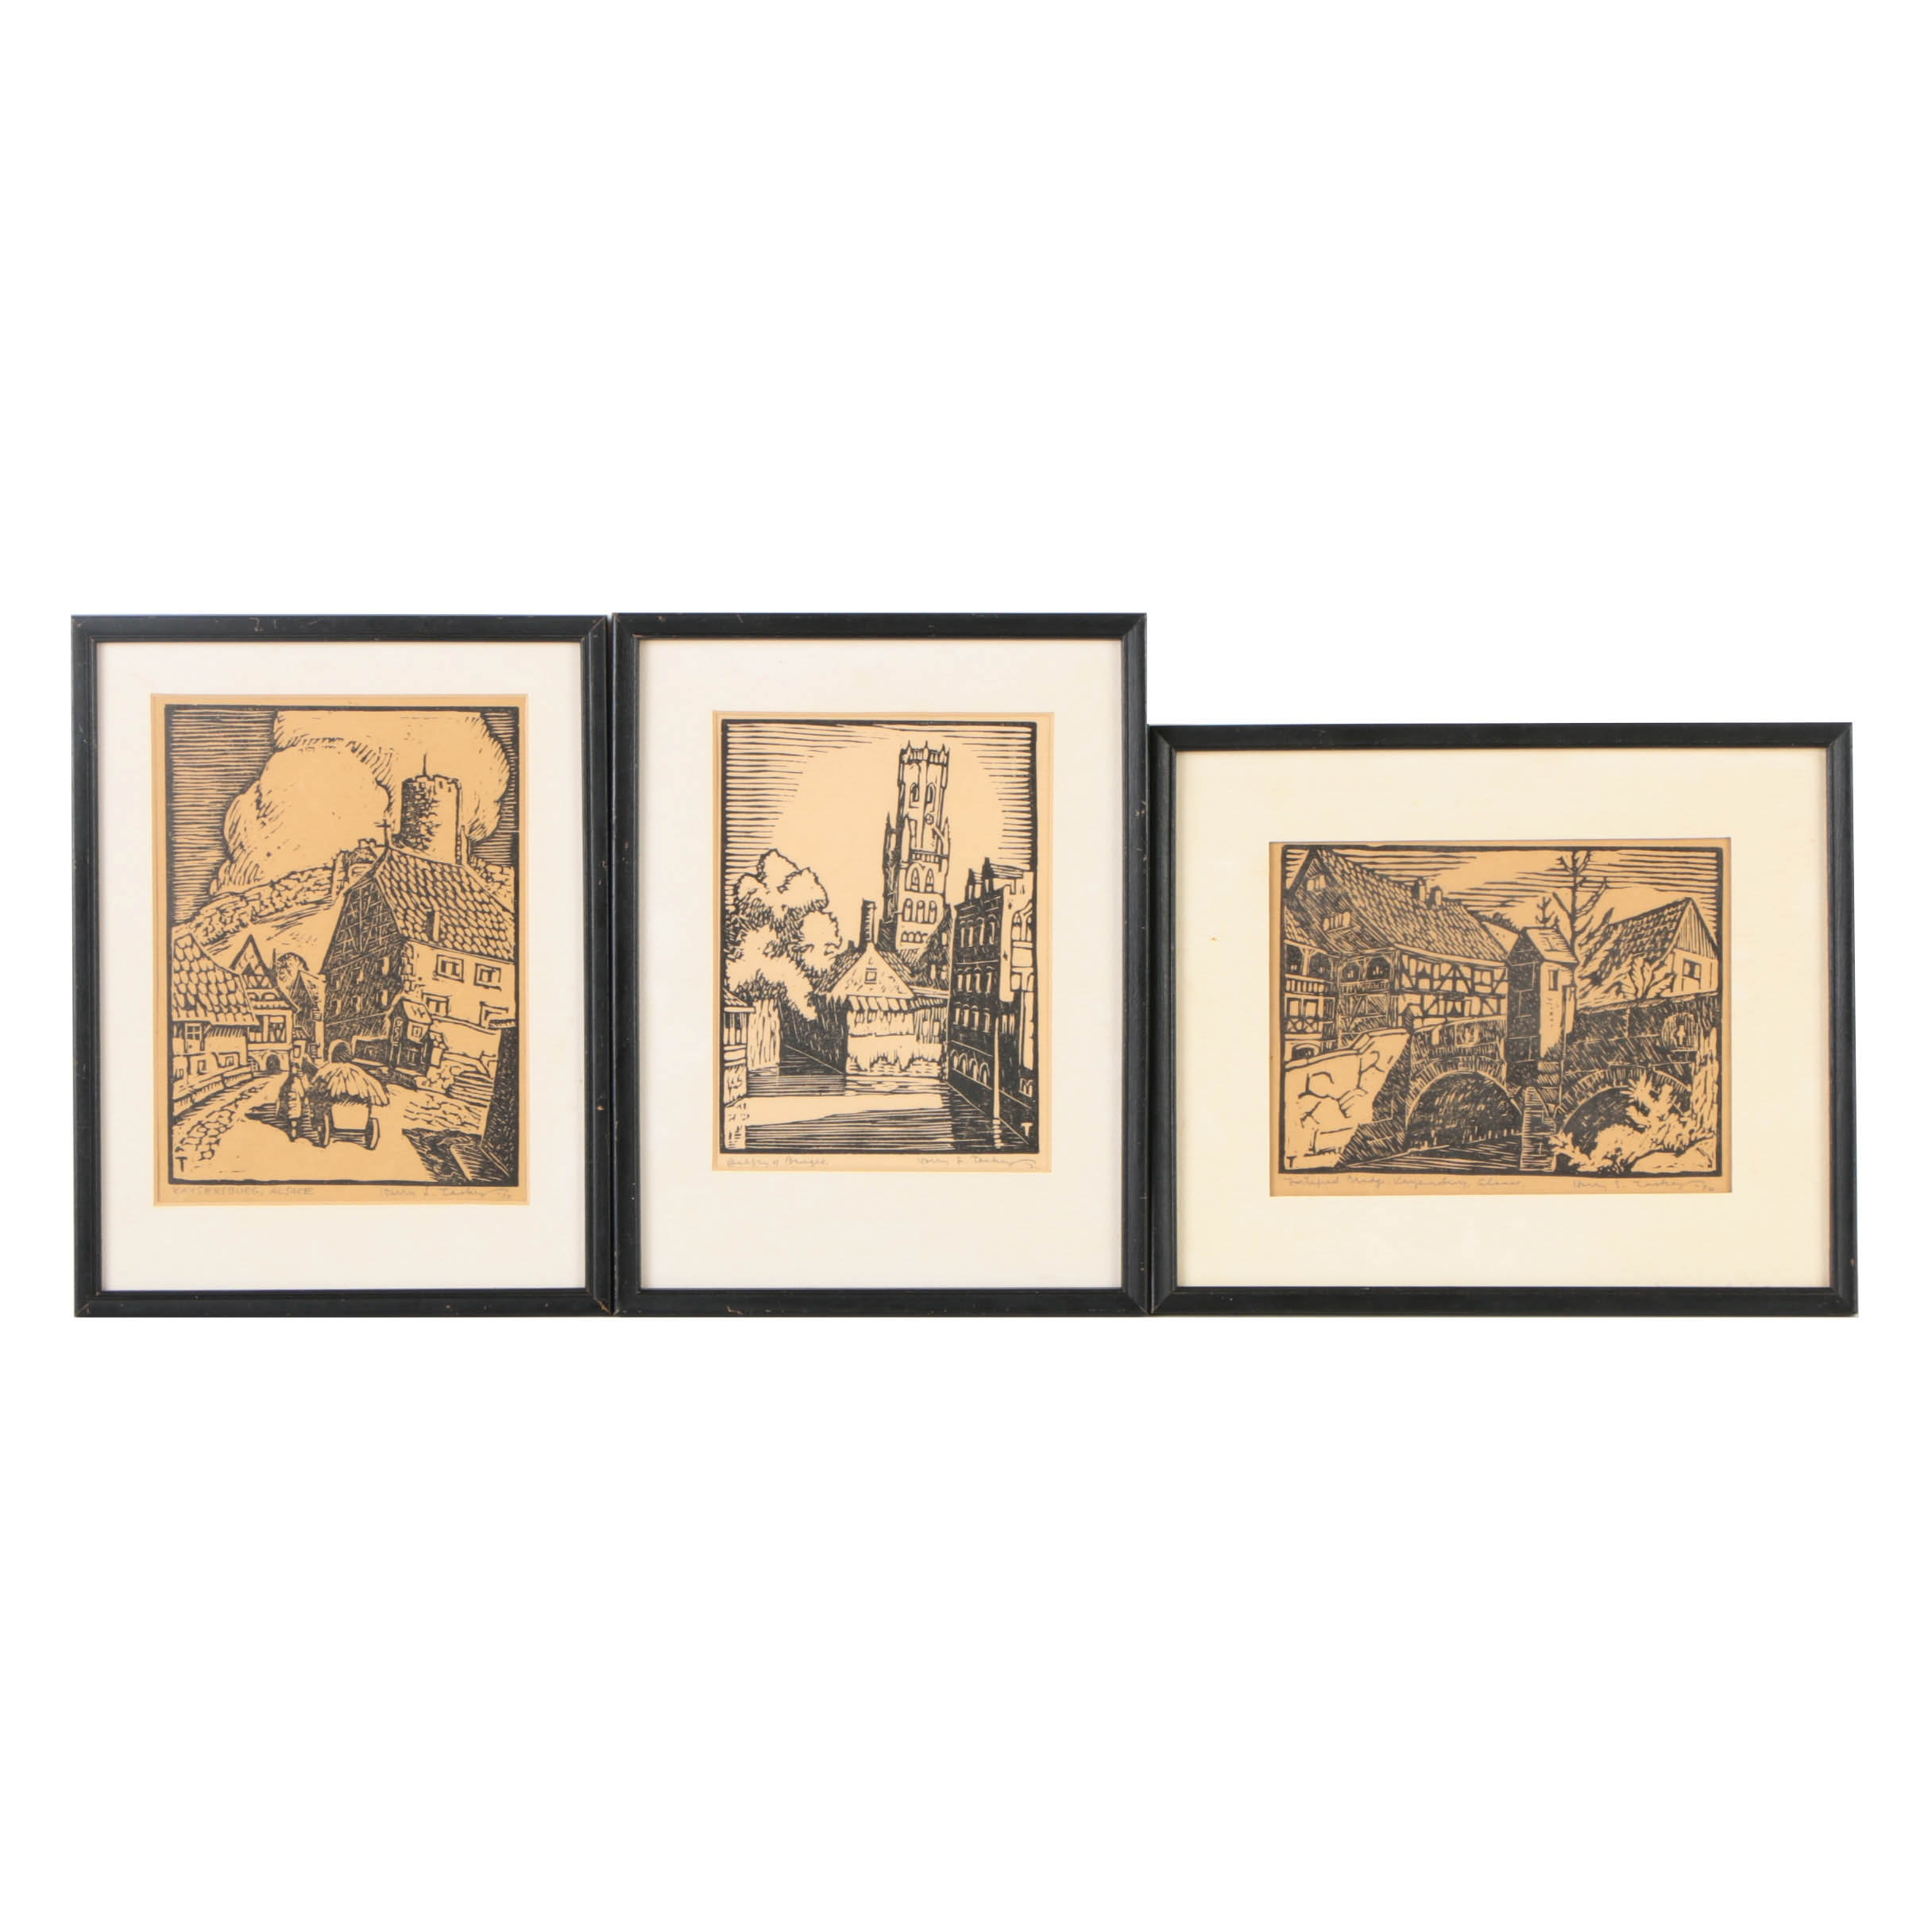 Collection of Harry Taskey Woodcuts on Paper of European Townscapes